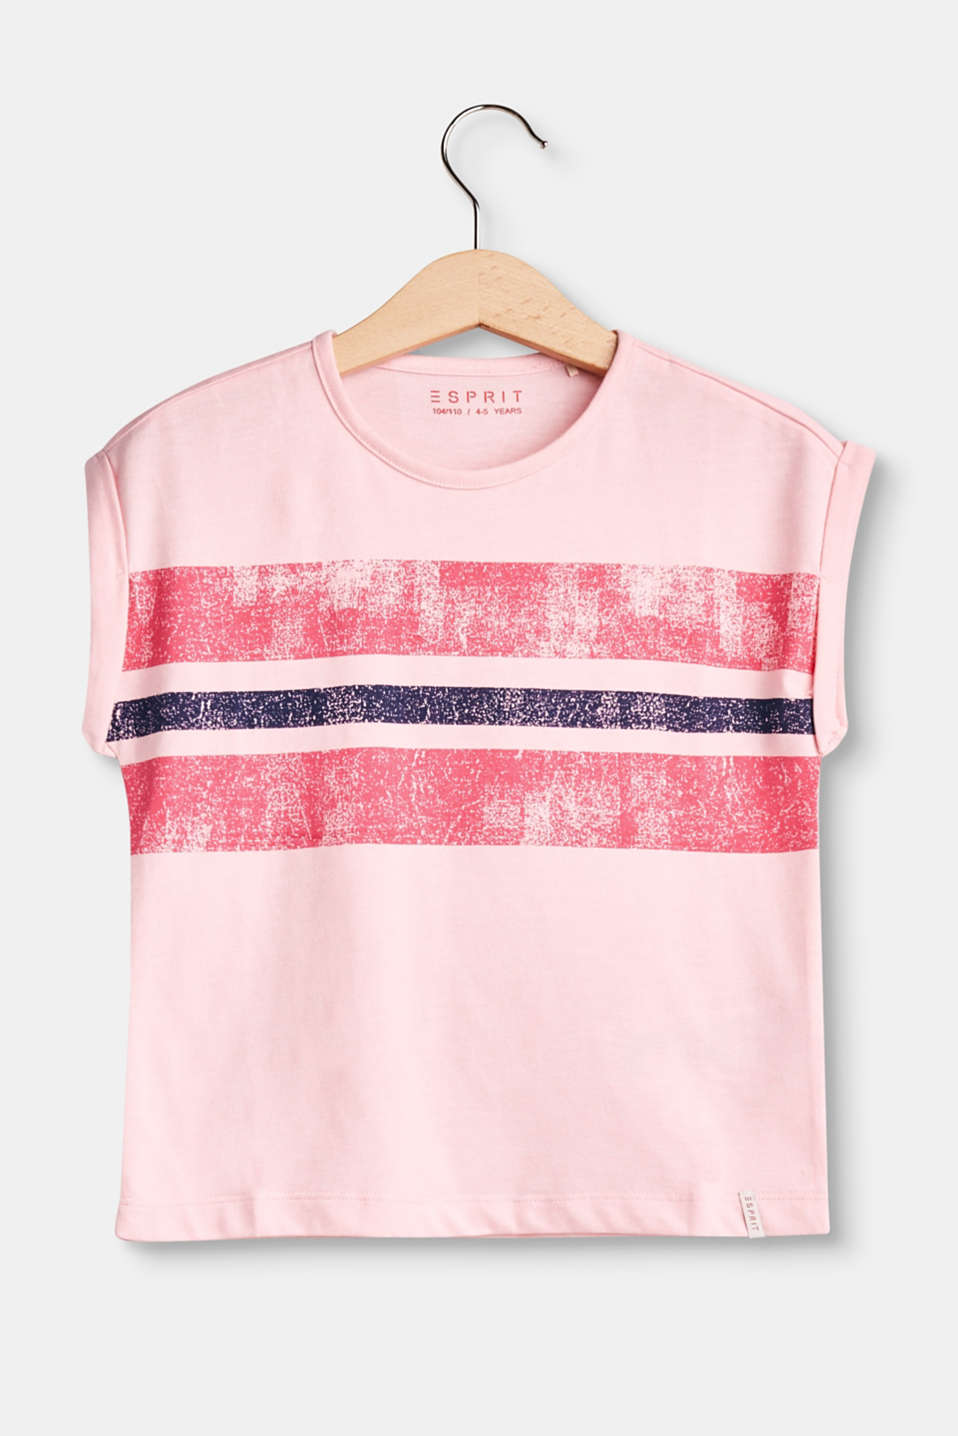 Esprit - Boxy T-shirt with striped print